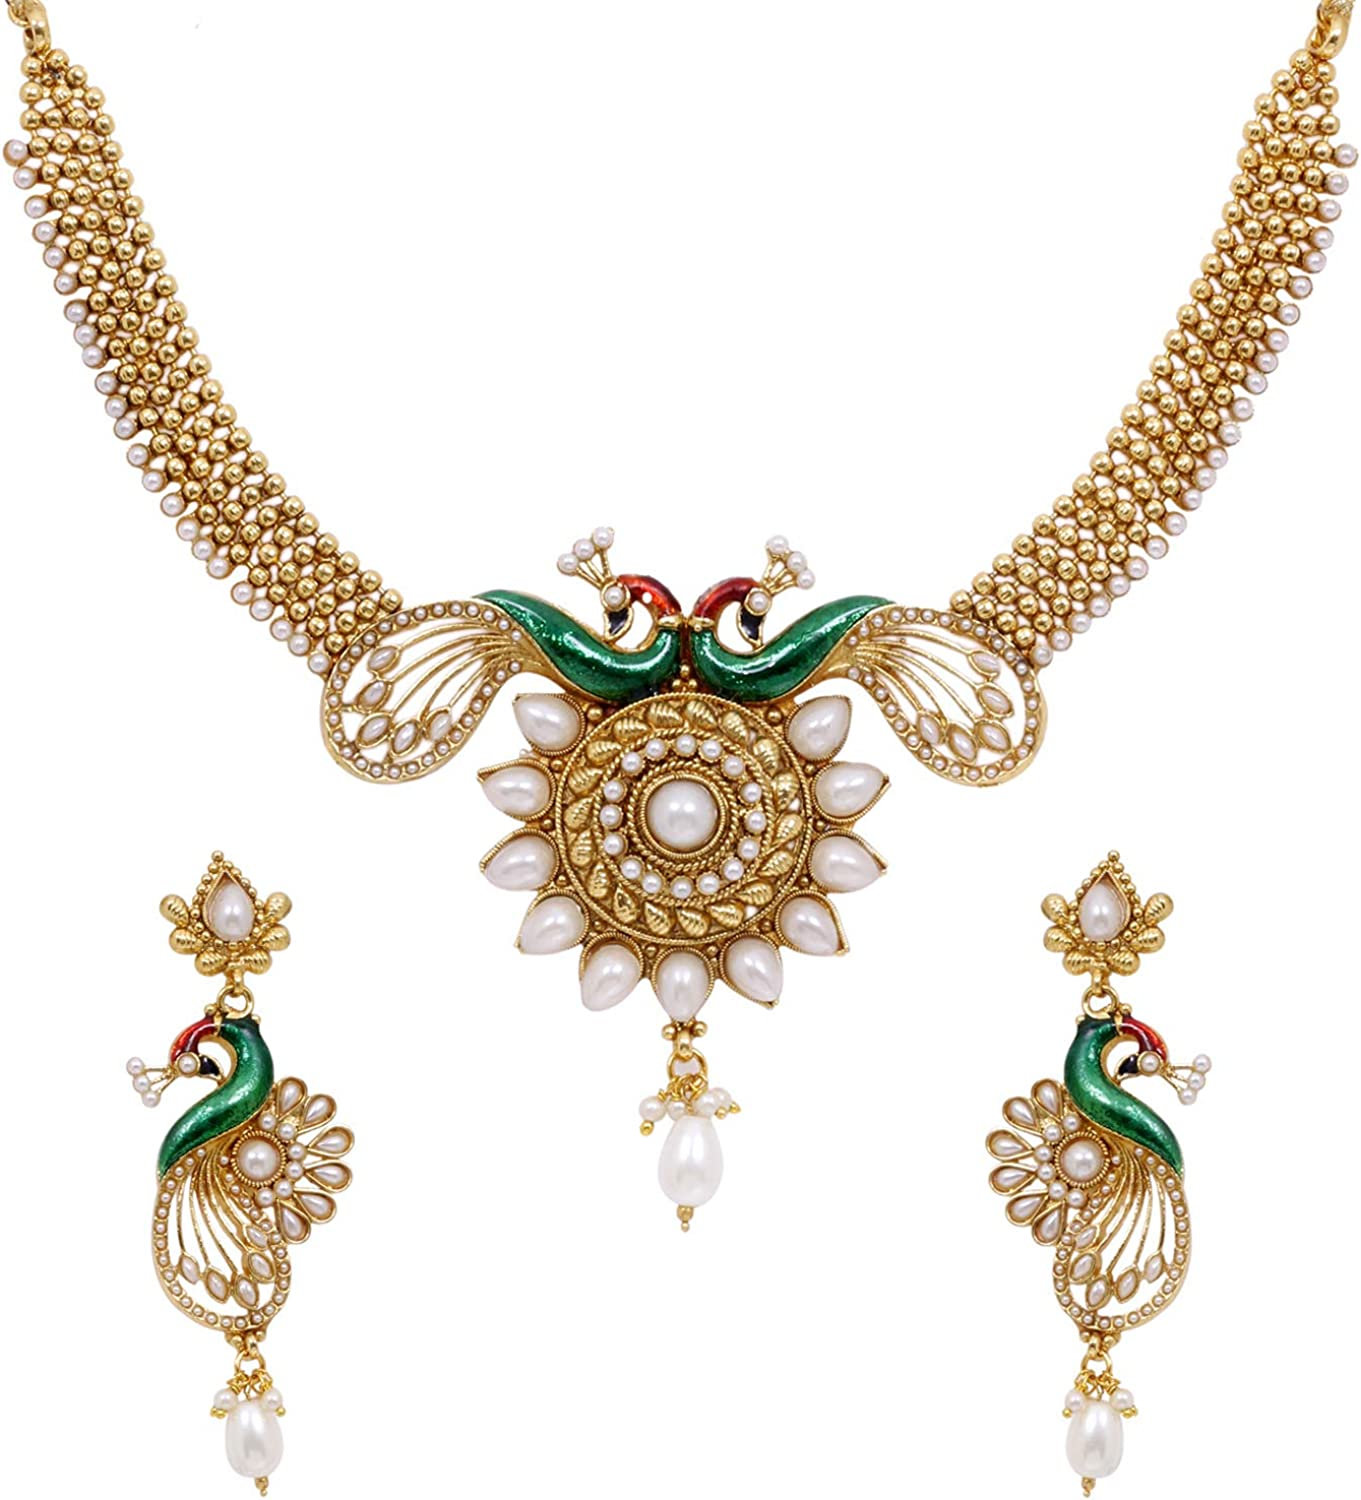 SANARA Indian Bollywood Antique Gold Plated Peacock White Pearl Made Peacock Pearl & Choker Necklace & Earring Set Wedding Partywear Jewelry